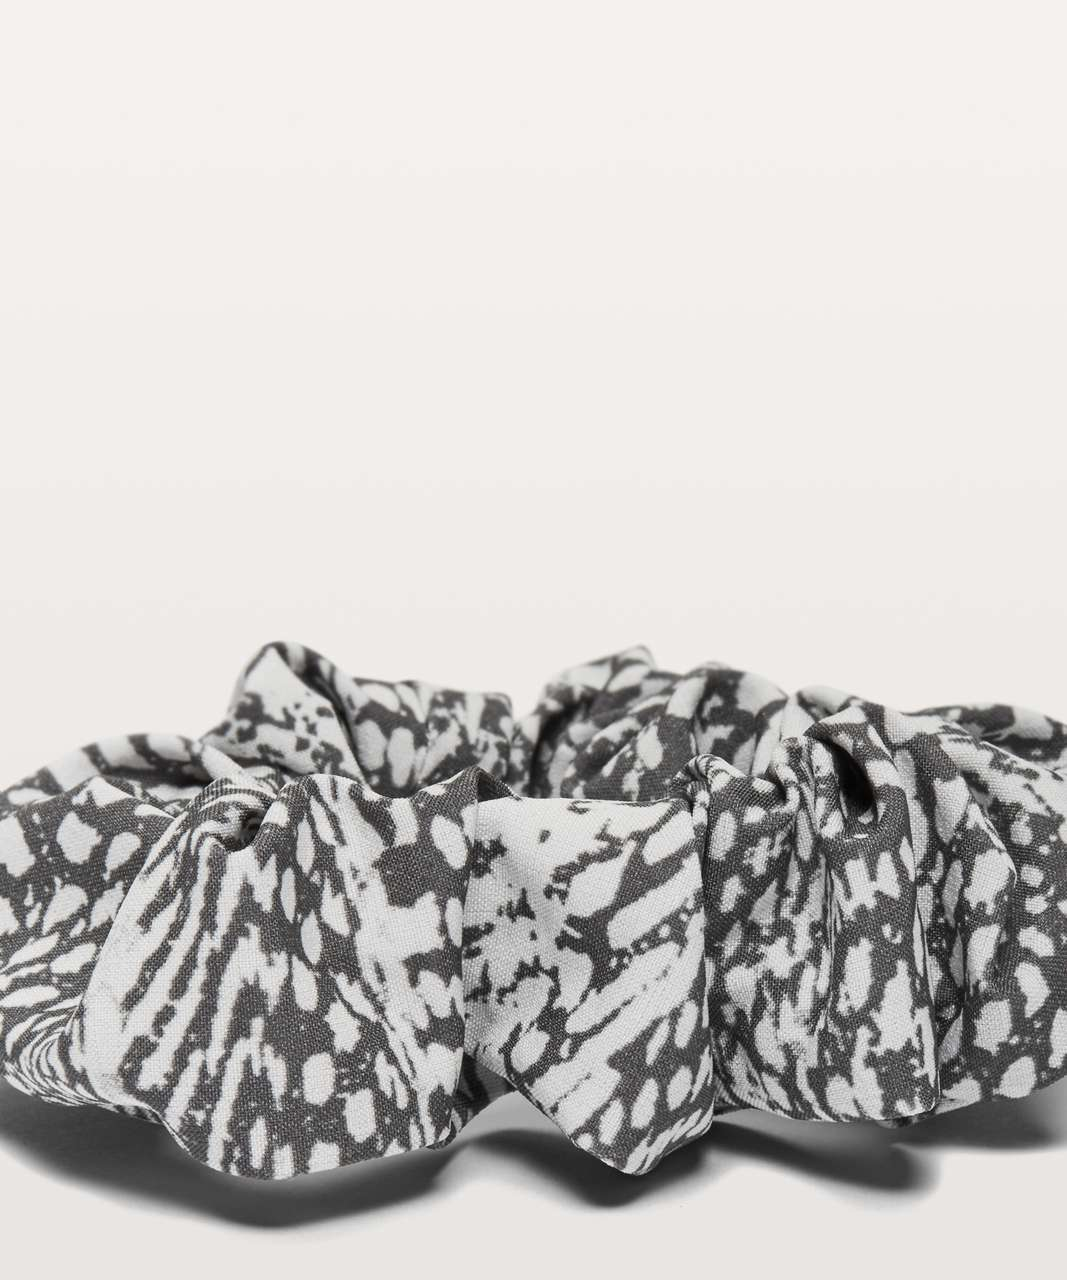 Lululemon Uplifting Scrunchie - Swerve Vapor Metal Grey